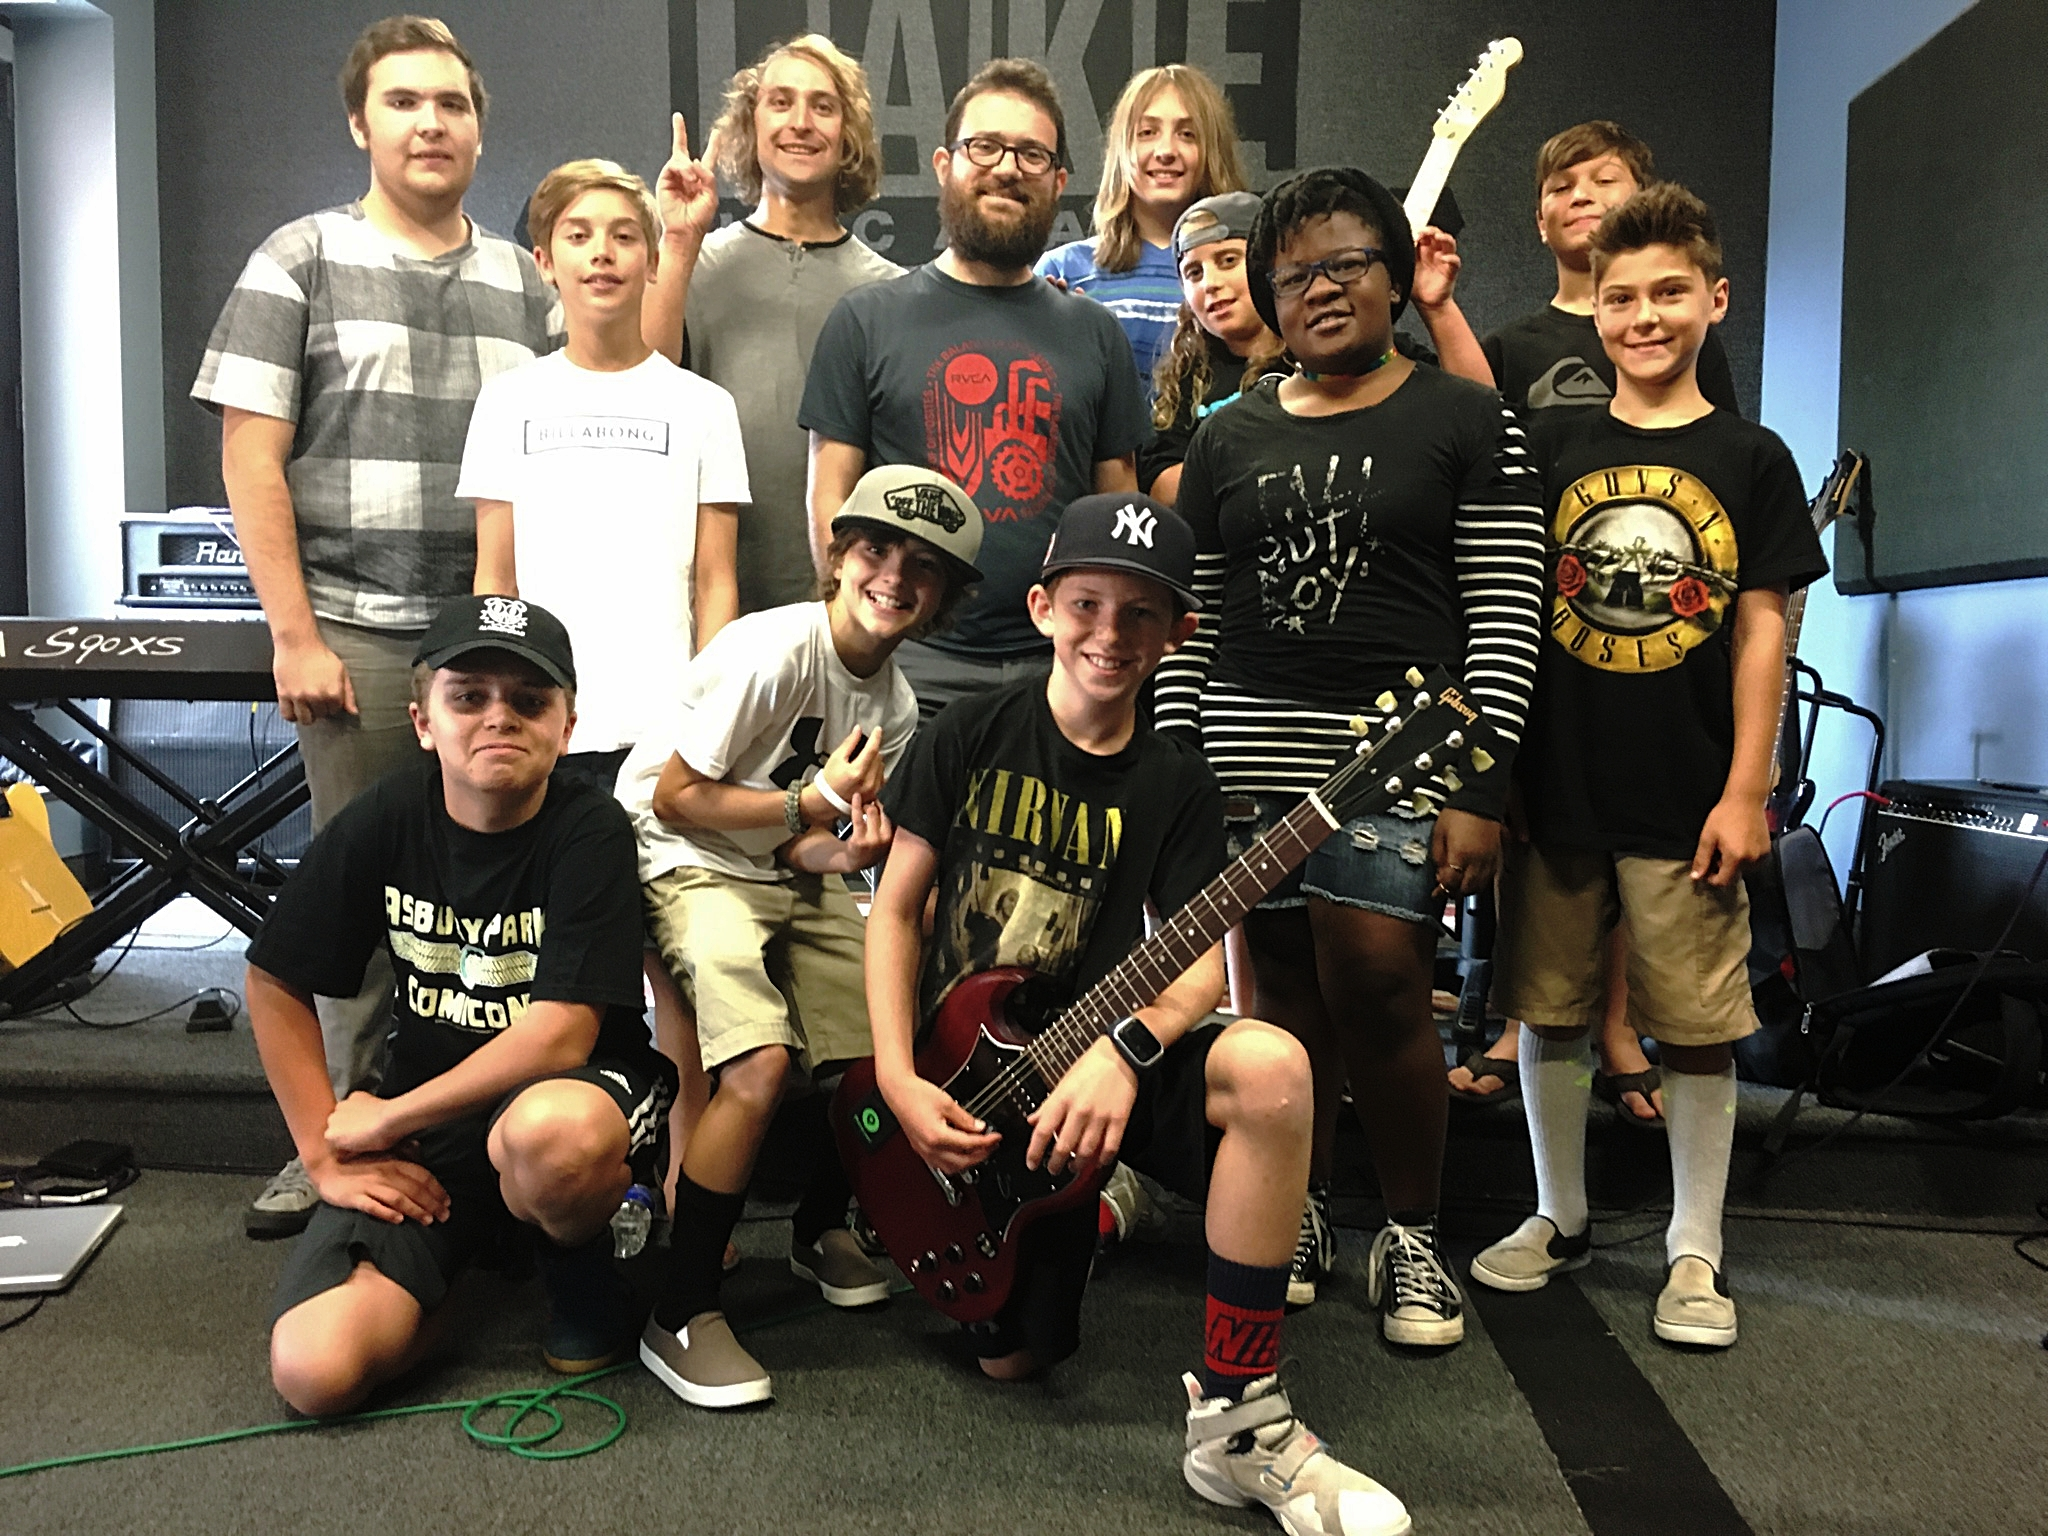 Bob Lanzetti, of Snarky Puppy, with our Guitar Week Camp. Summer 2017.